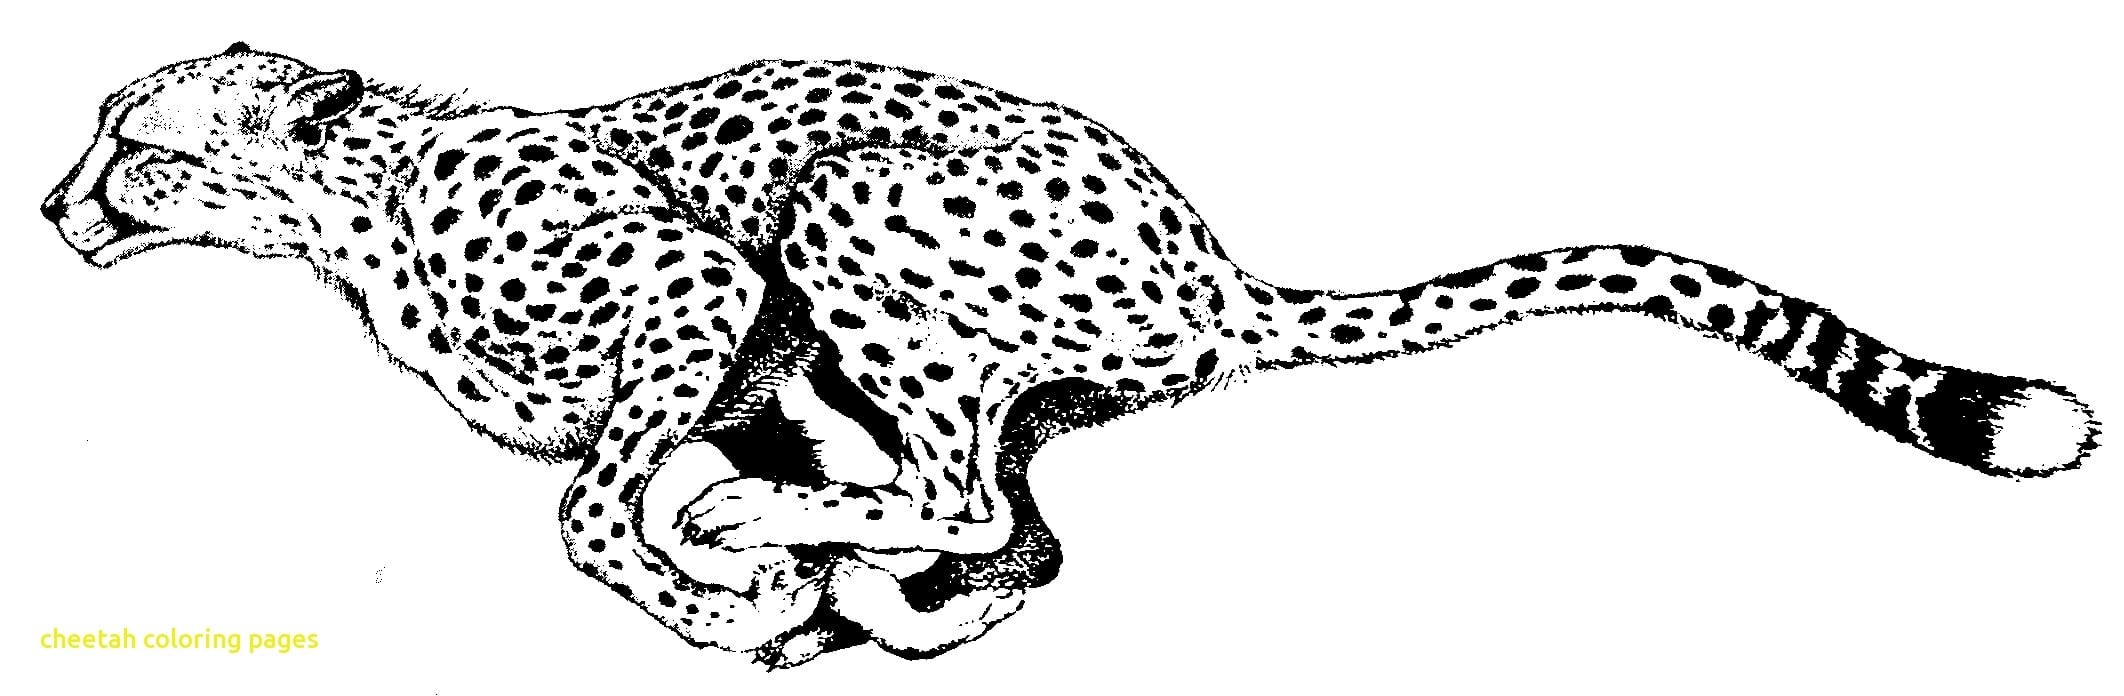 Fresh Cheetah Running Coloring Pages Gallery